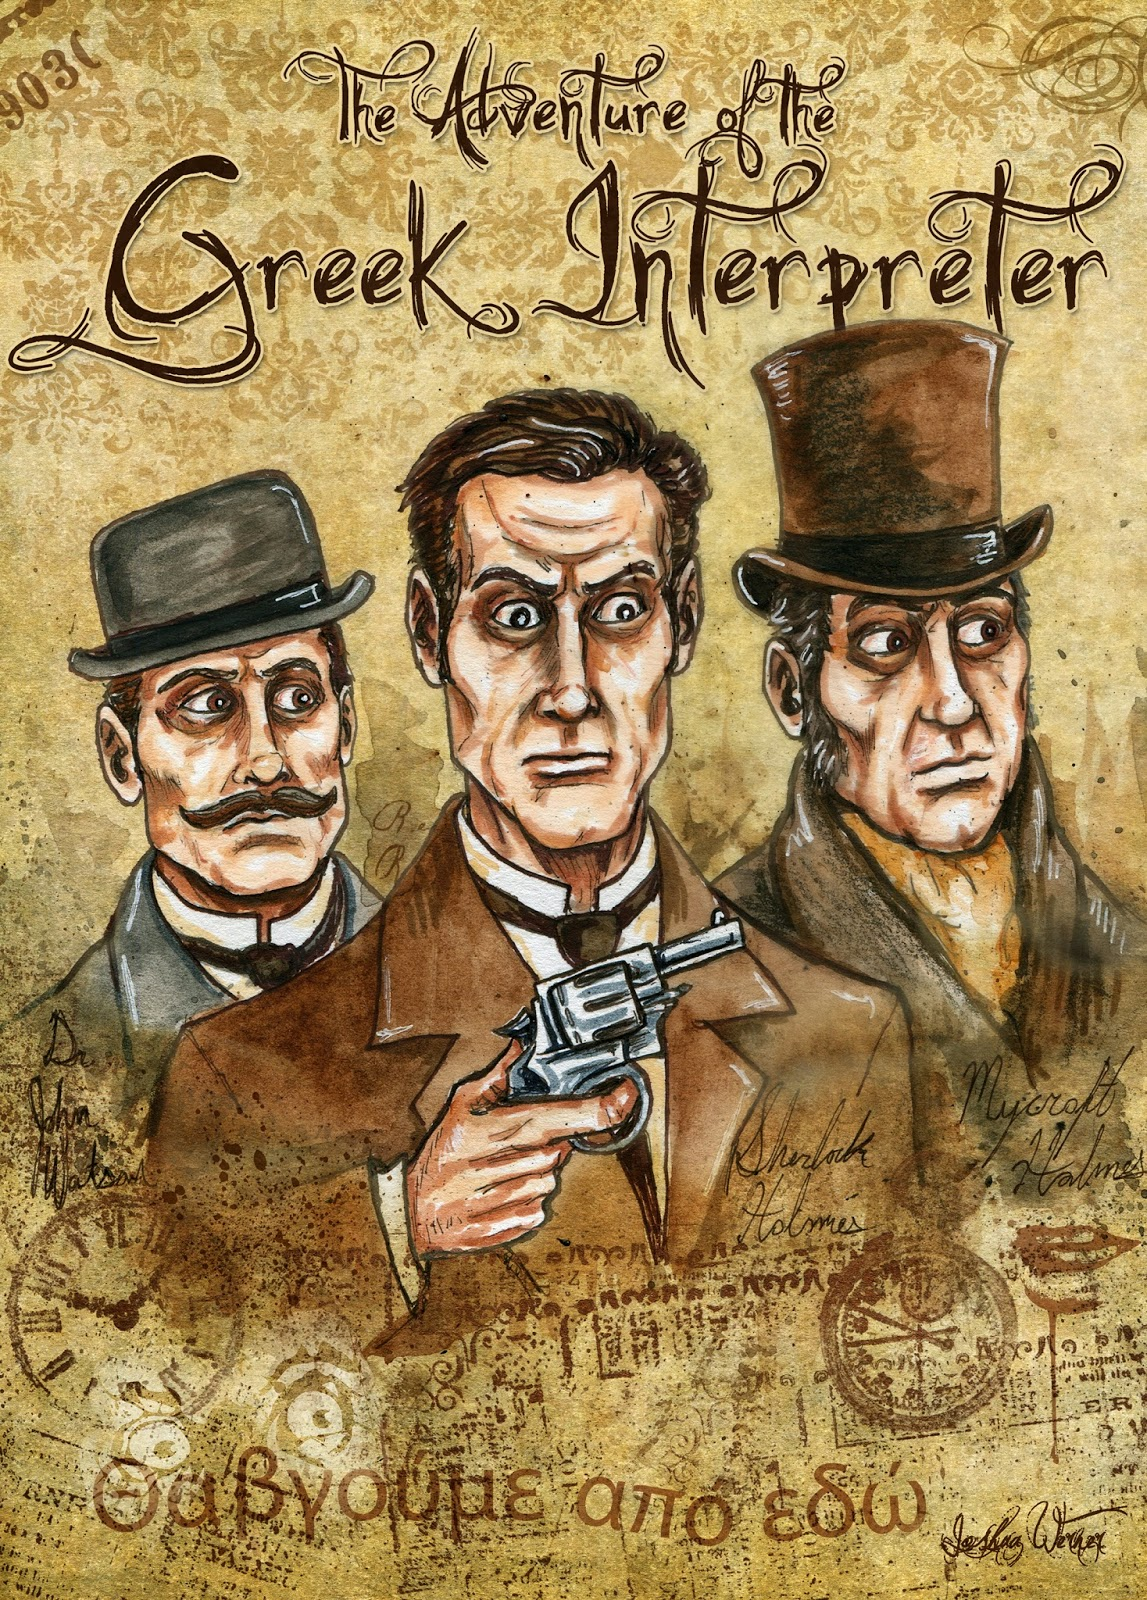 Sherlock Holmes in The Adventure of the Greek Interpreter drawn by Sidney Paget